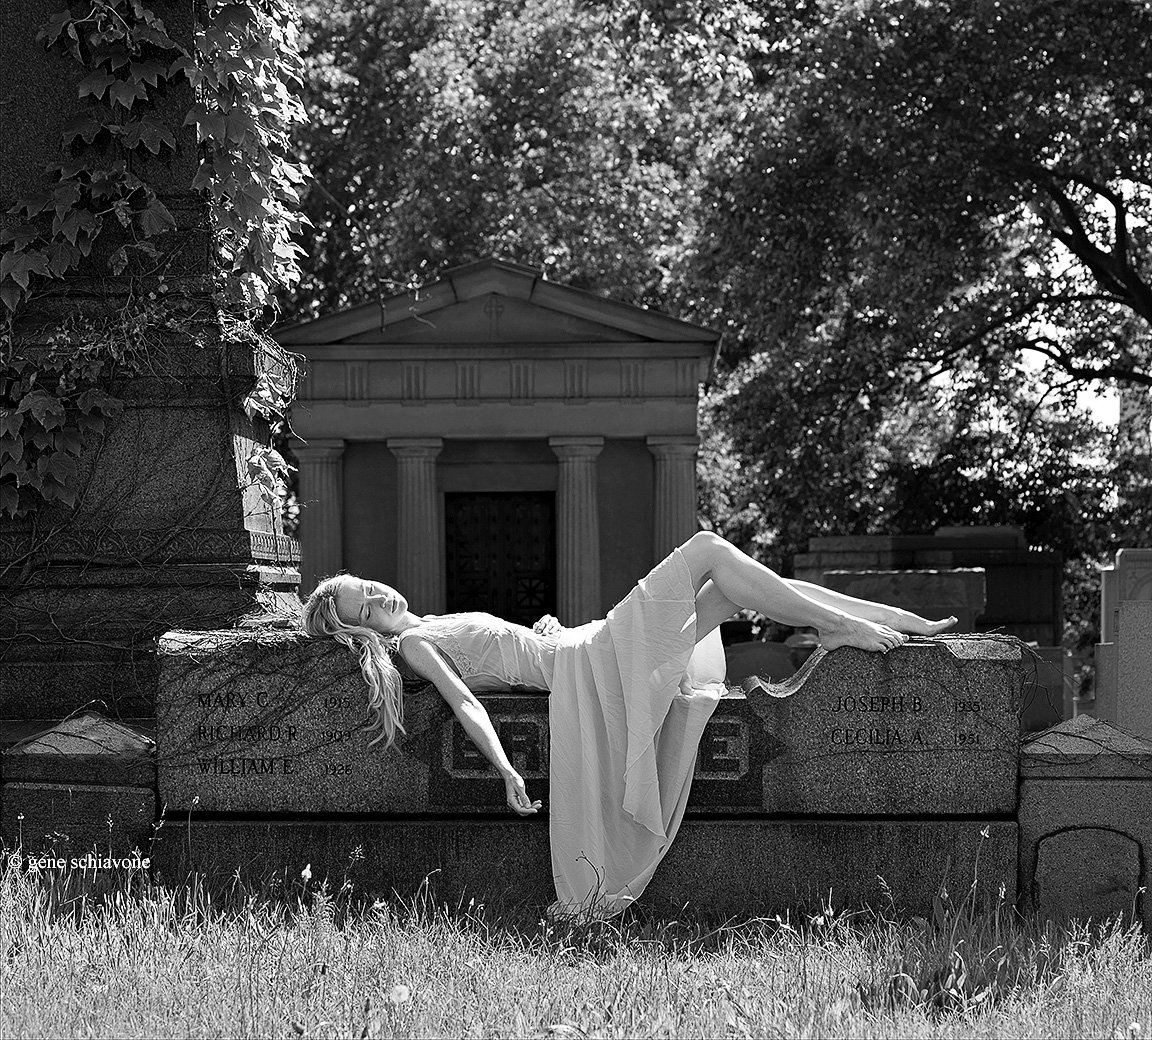 Nap in on a tombstone